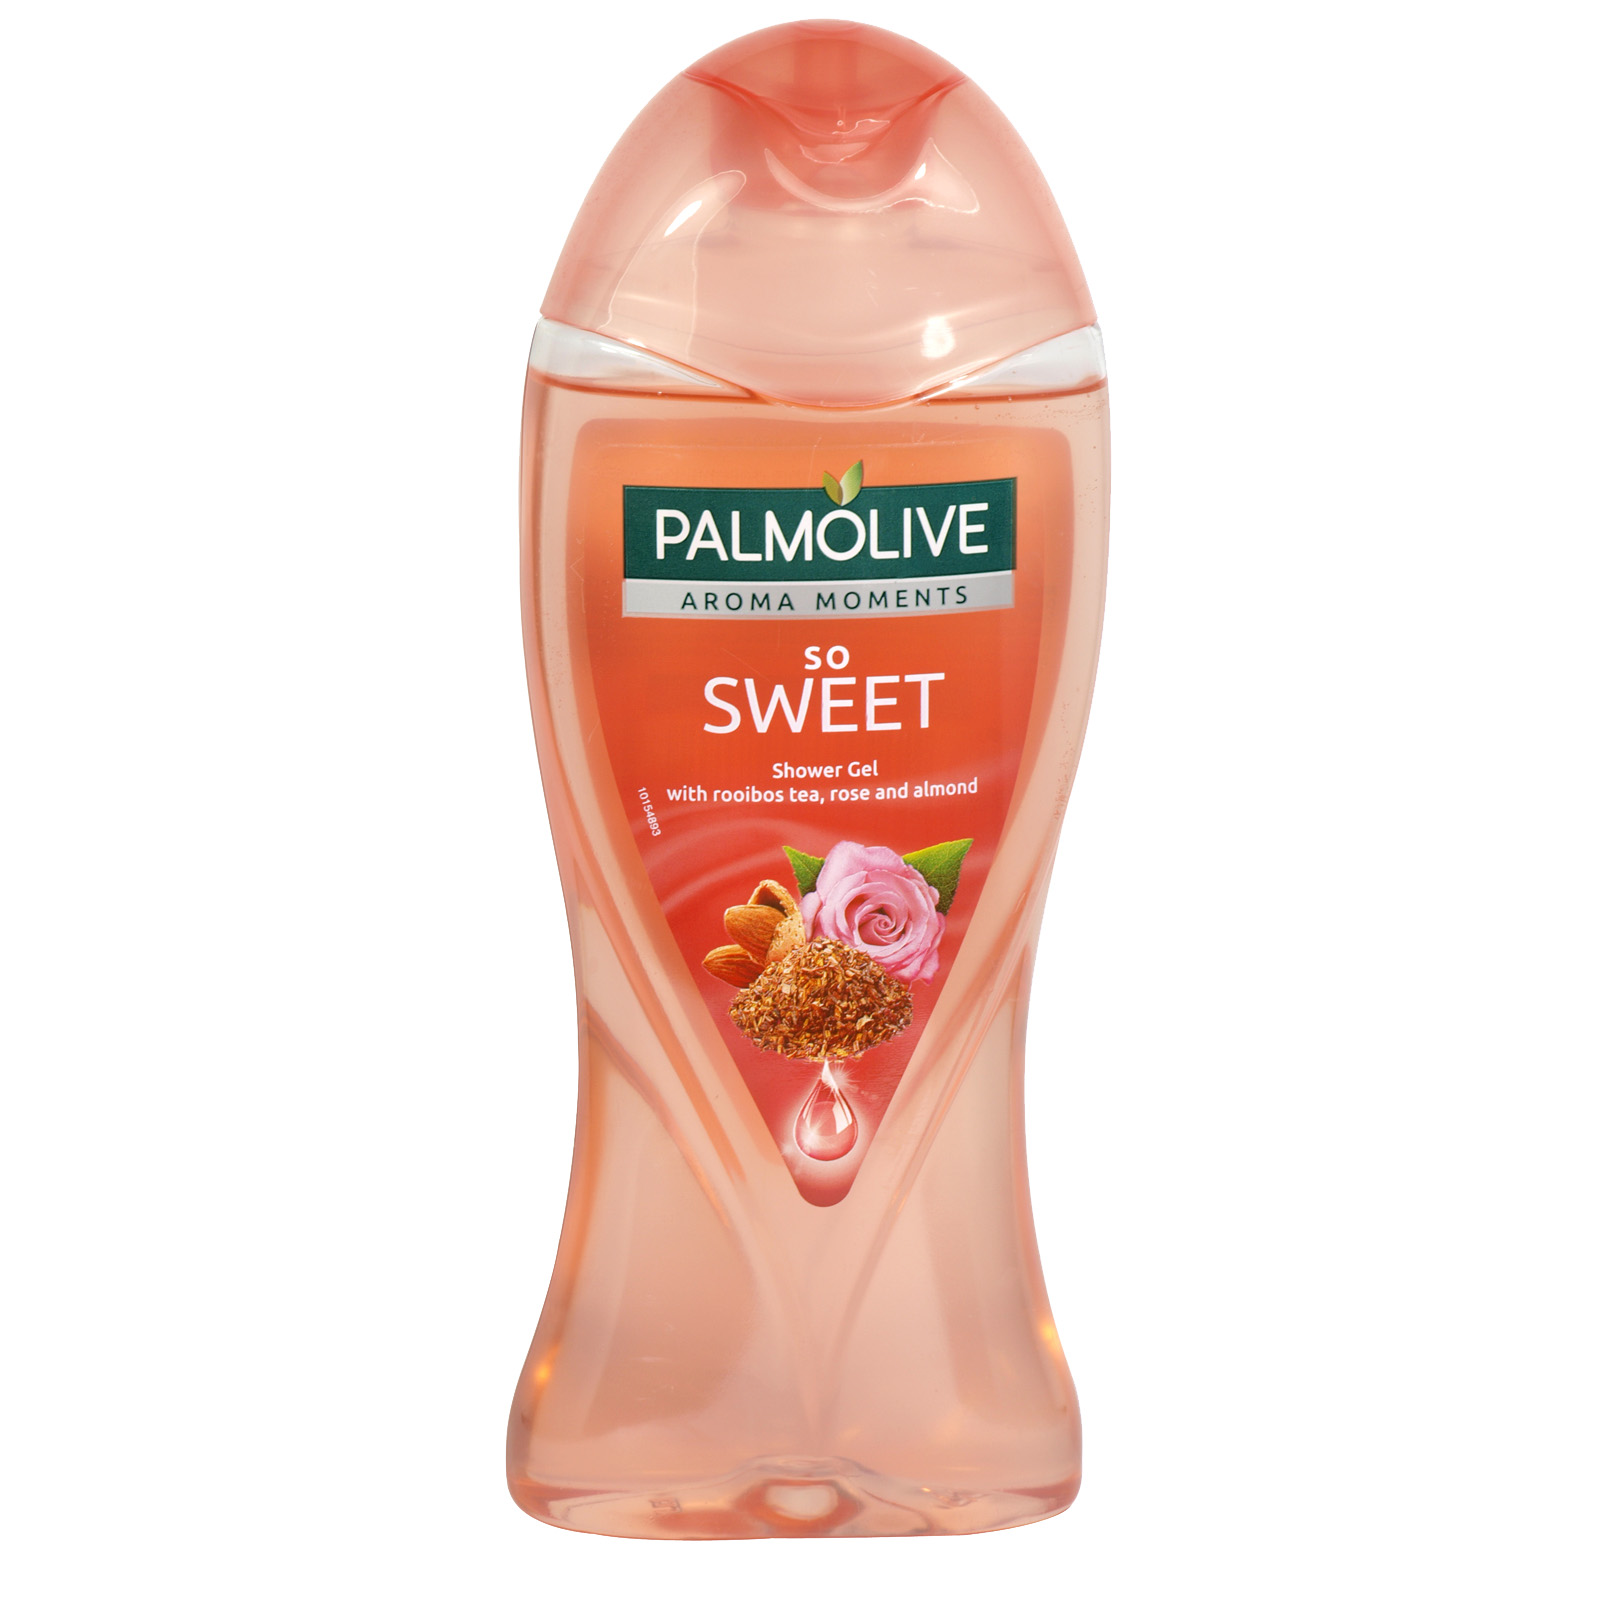 Palmolive Shower Gel 250ml So Sweet X6 Concord Cash And Carry